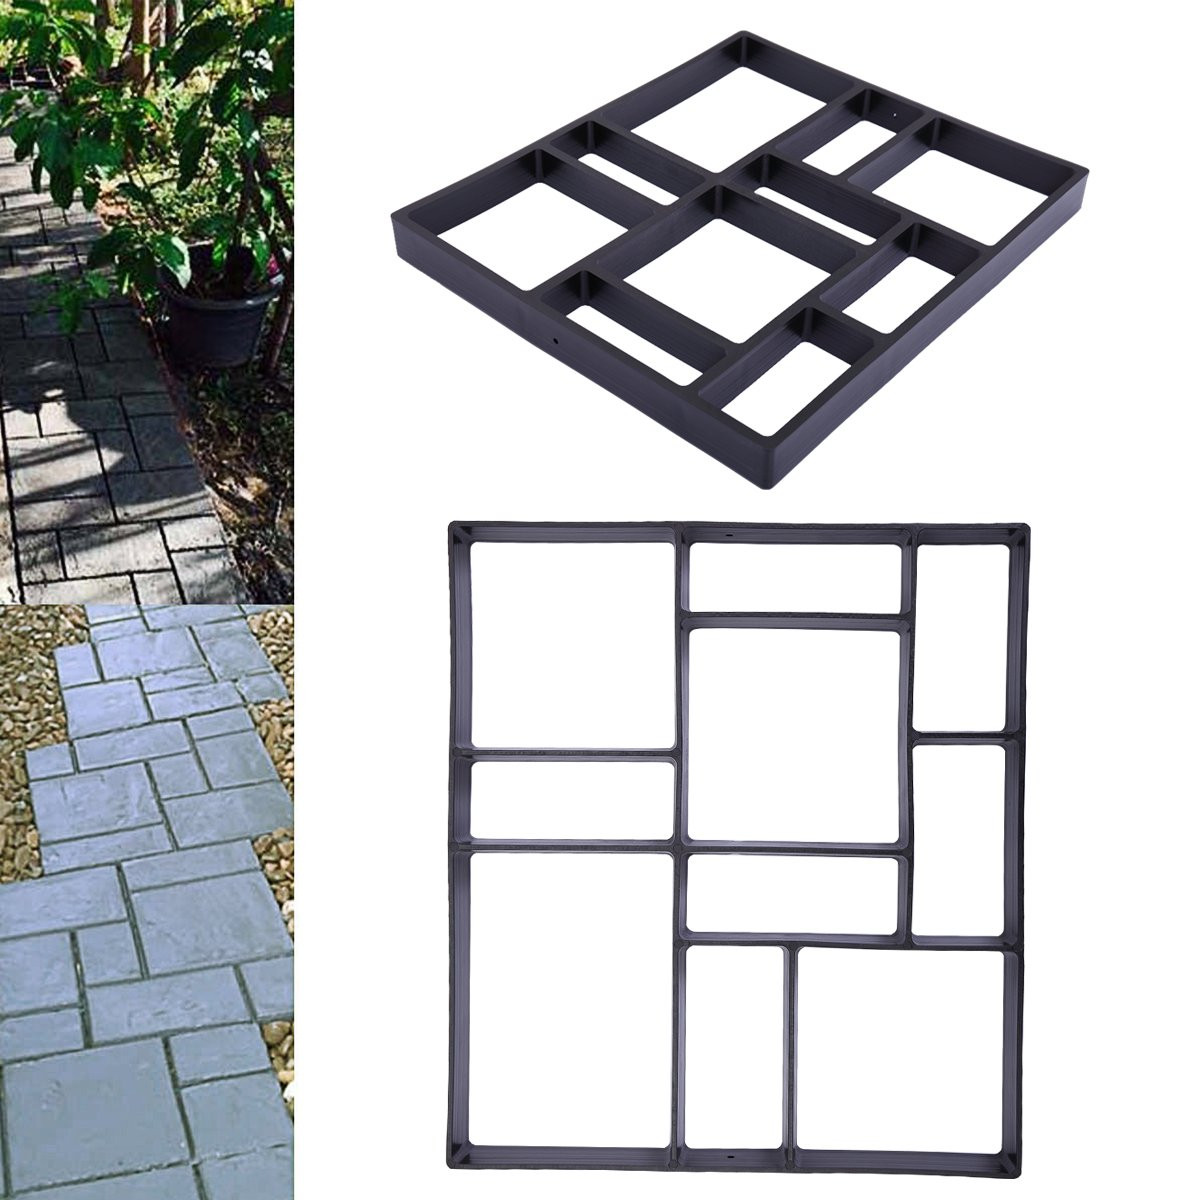 LAZYMOON Pathmate Stone Molds Concrete Stepping Road DIY Mold Outdoor Decorative Stone Walk Maker Overall Dimensions: 17.7''×15.7''